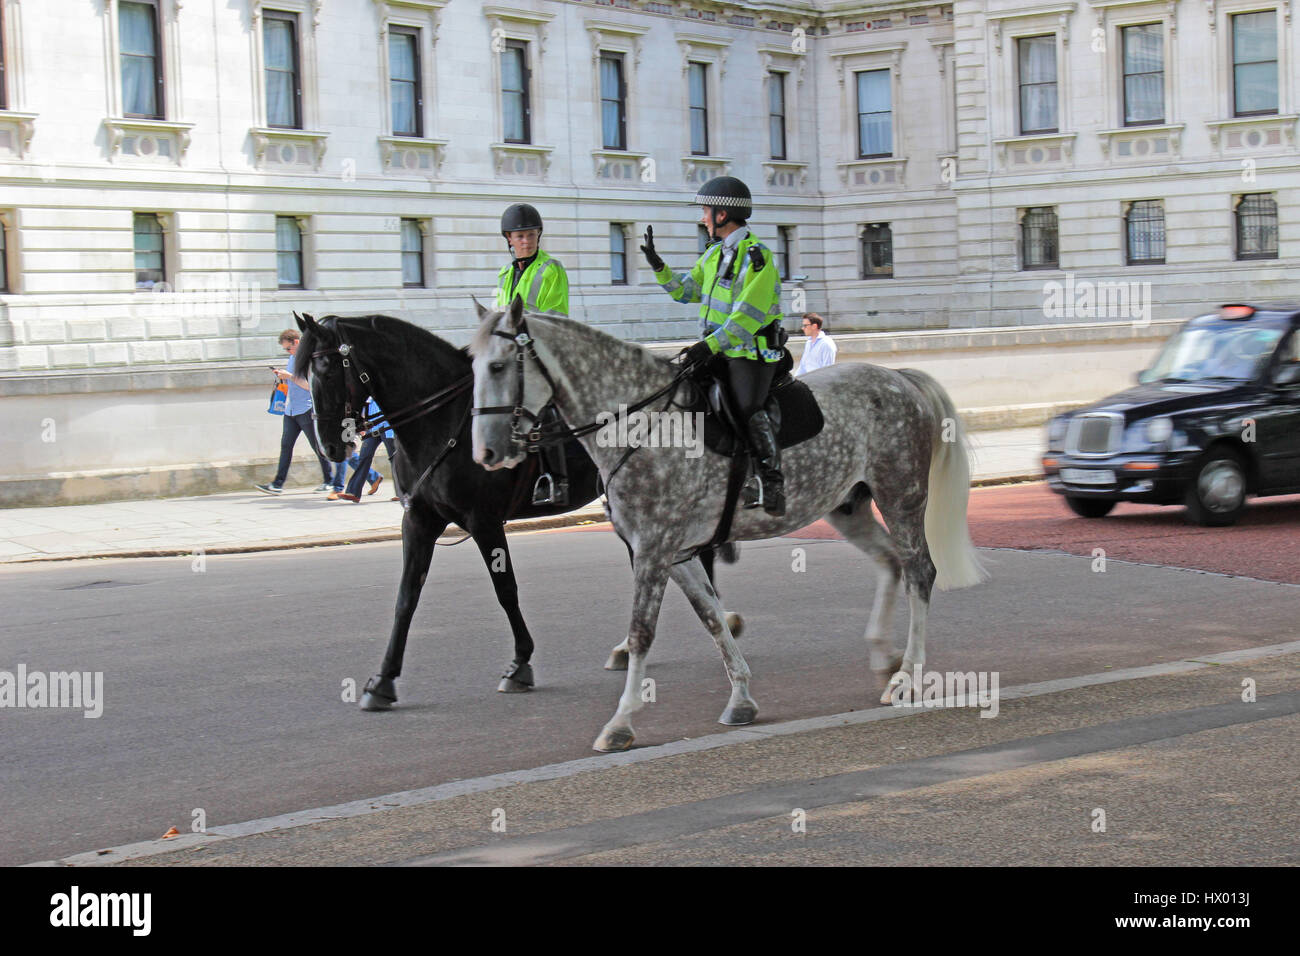 Mounted Police passing Horseguards Parade in London, England, UK Stock Photo